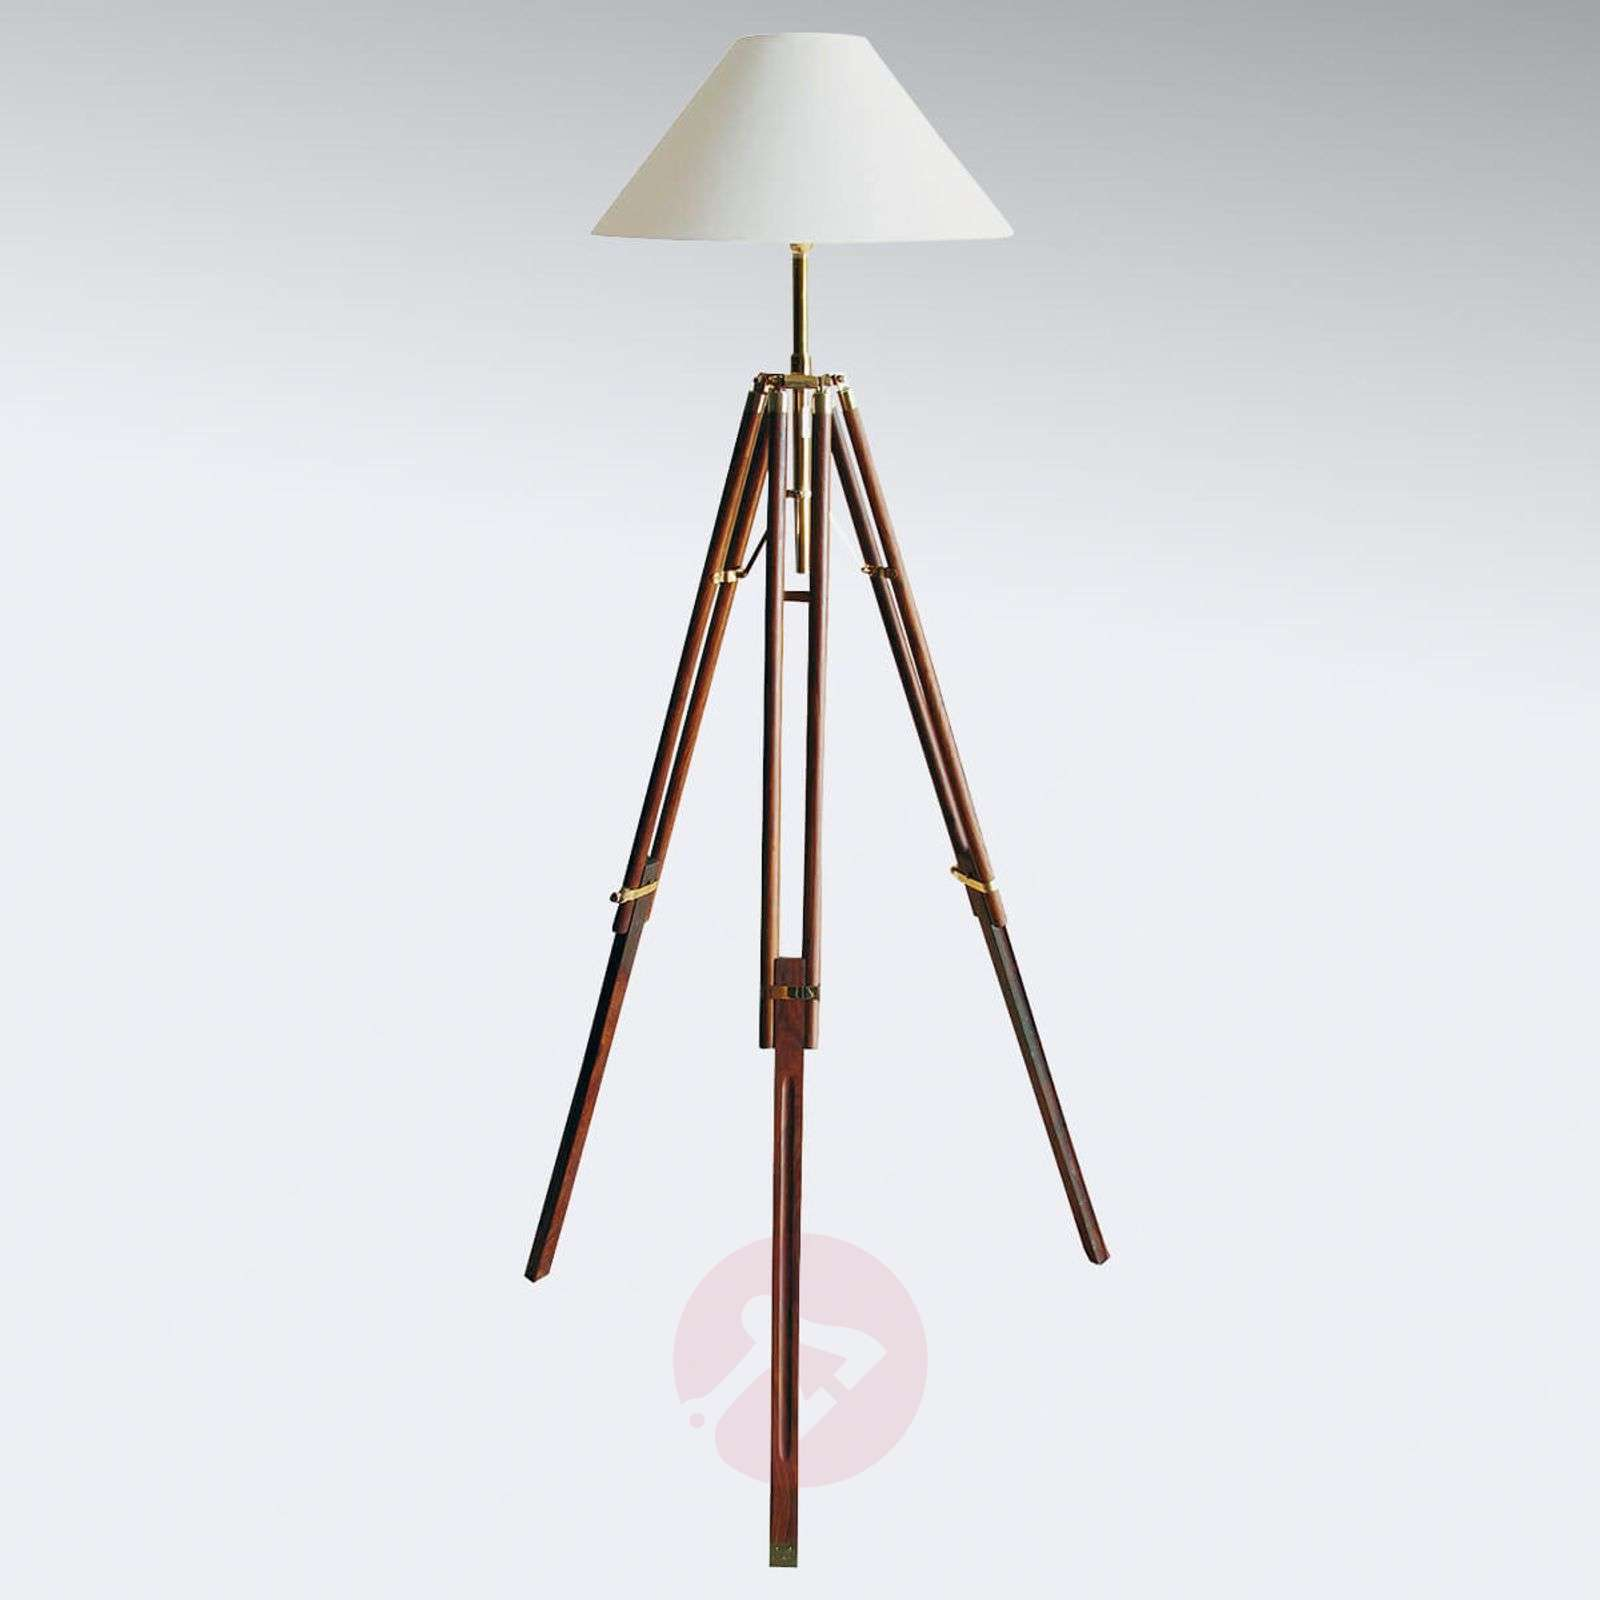 Tripod floor lamp Stativ with white lampshade-8553067-01